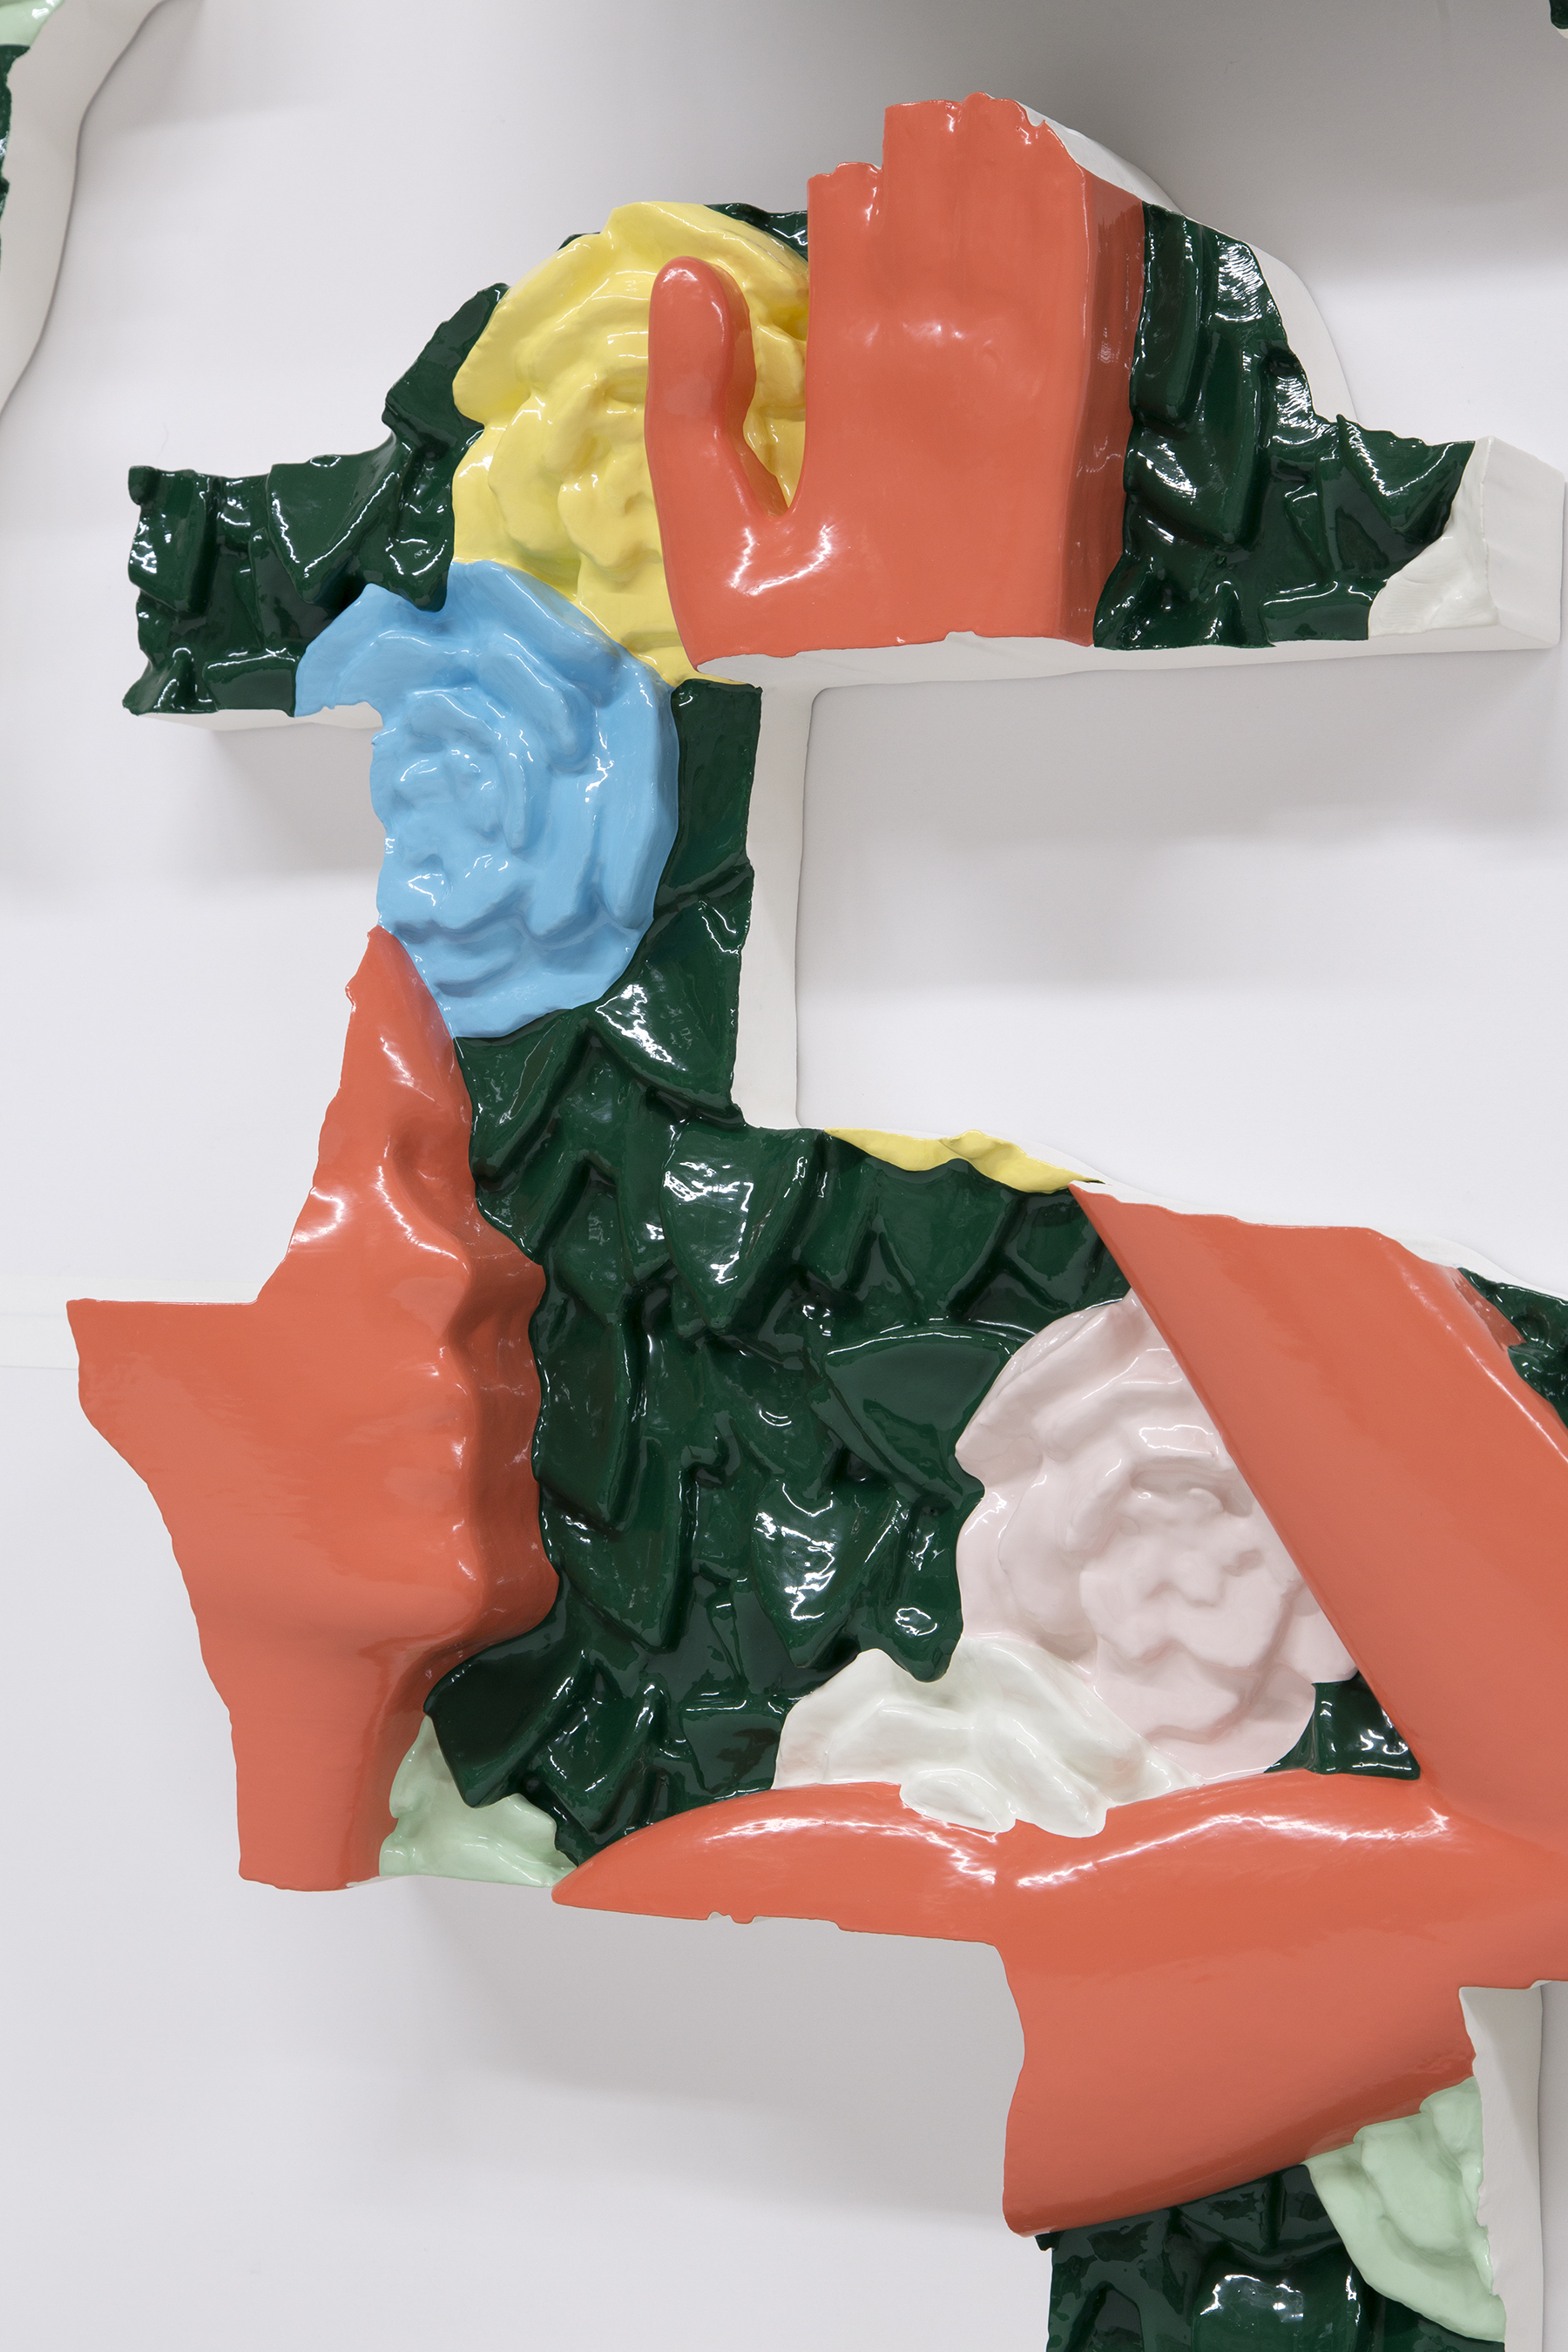 Matthew Paladino_In-A-Gadda (In The Garden)_Enamel on resin, plastic and wood in 6 panel sections_142 x 111 x  12,5 cm_2018_deatail shot.jpg